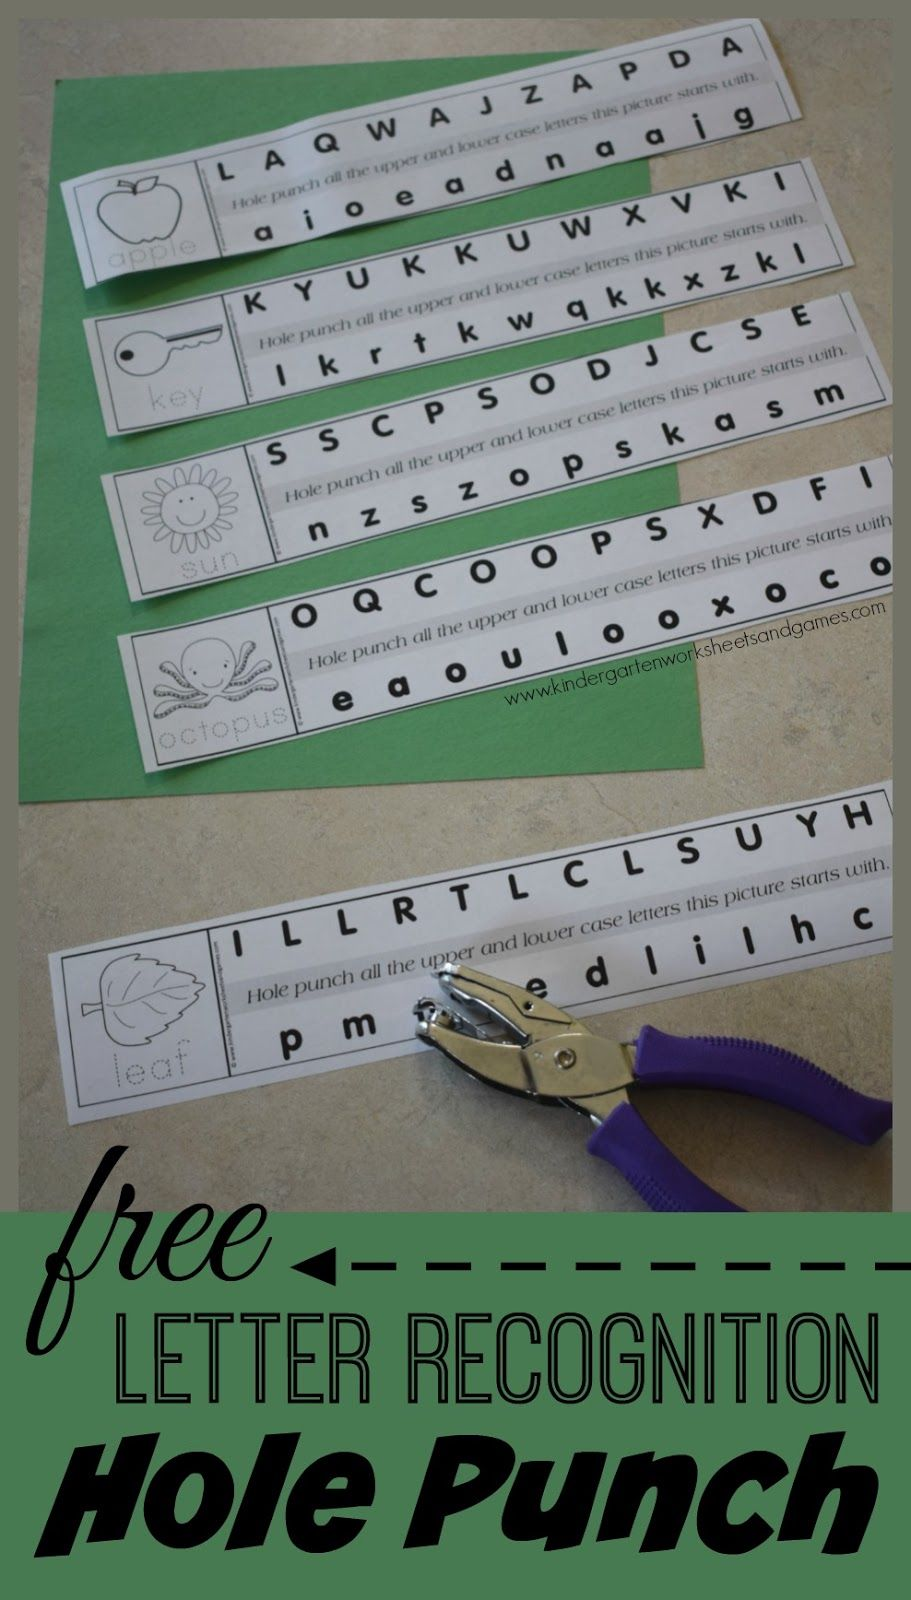 Free Alphabet Hole Punching Activity! Cute letter